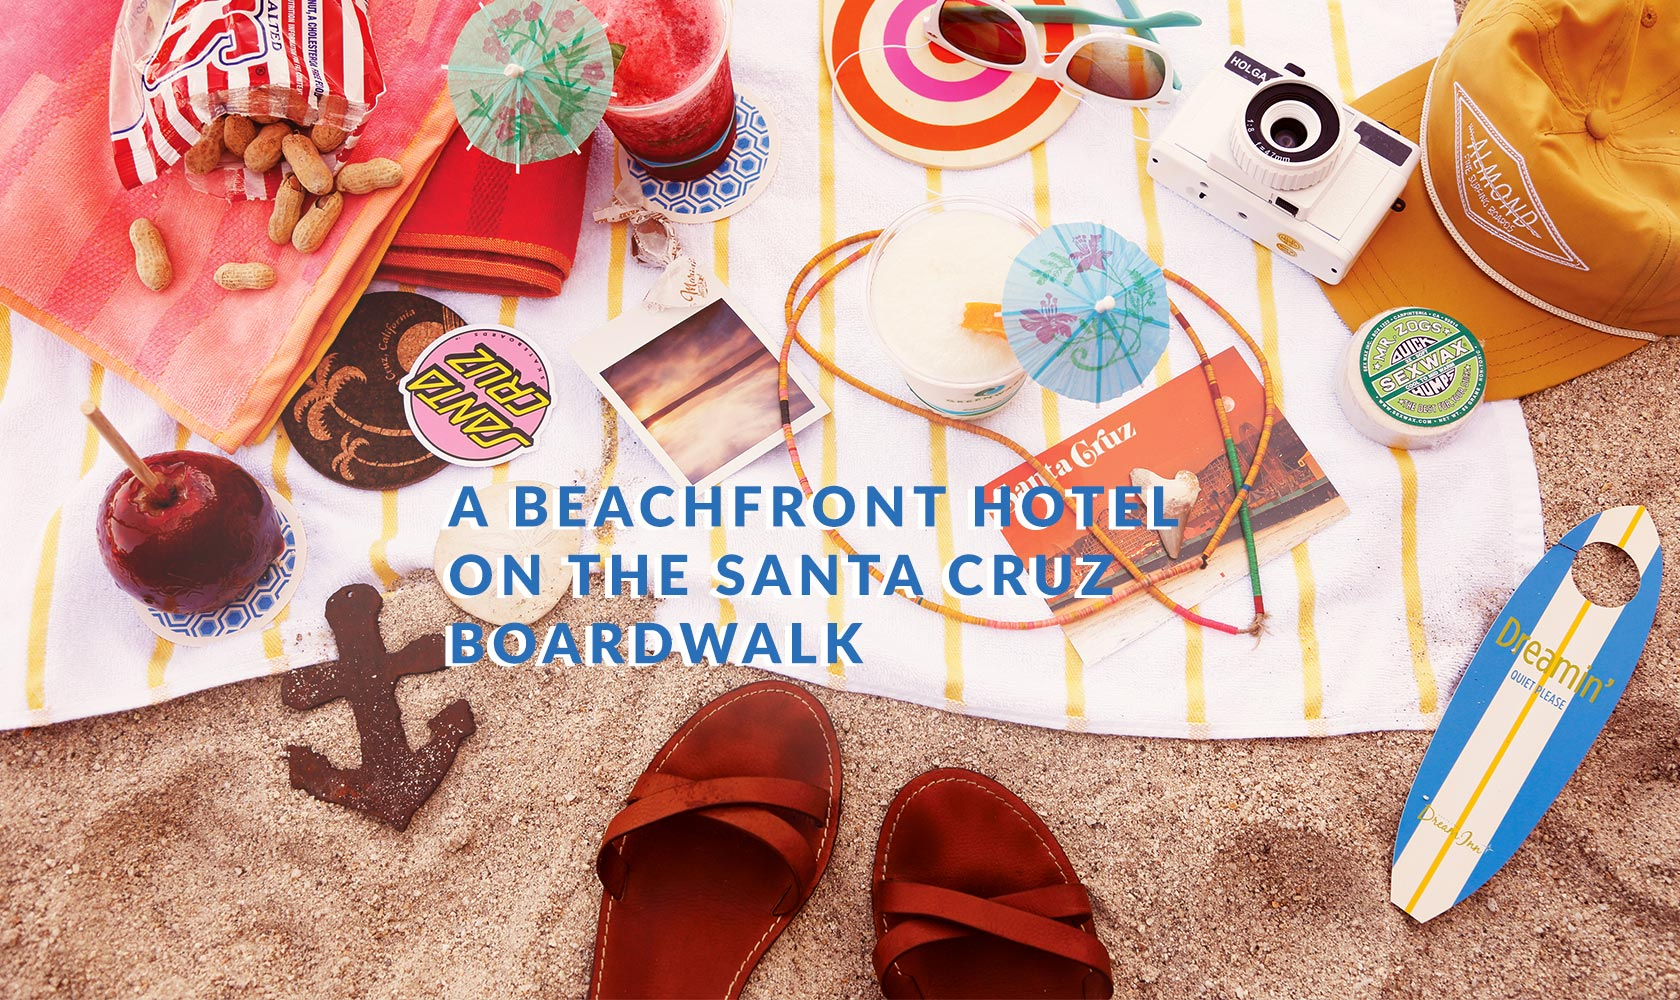 A Beachfront Hotel on the Santa Cruz Boardwalk